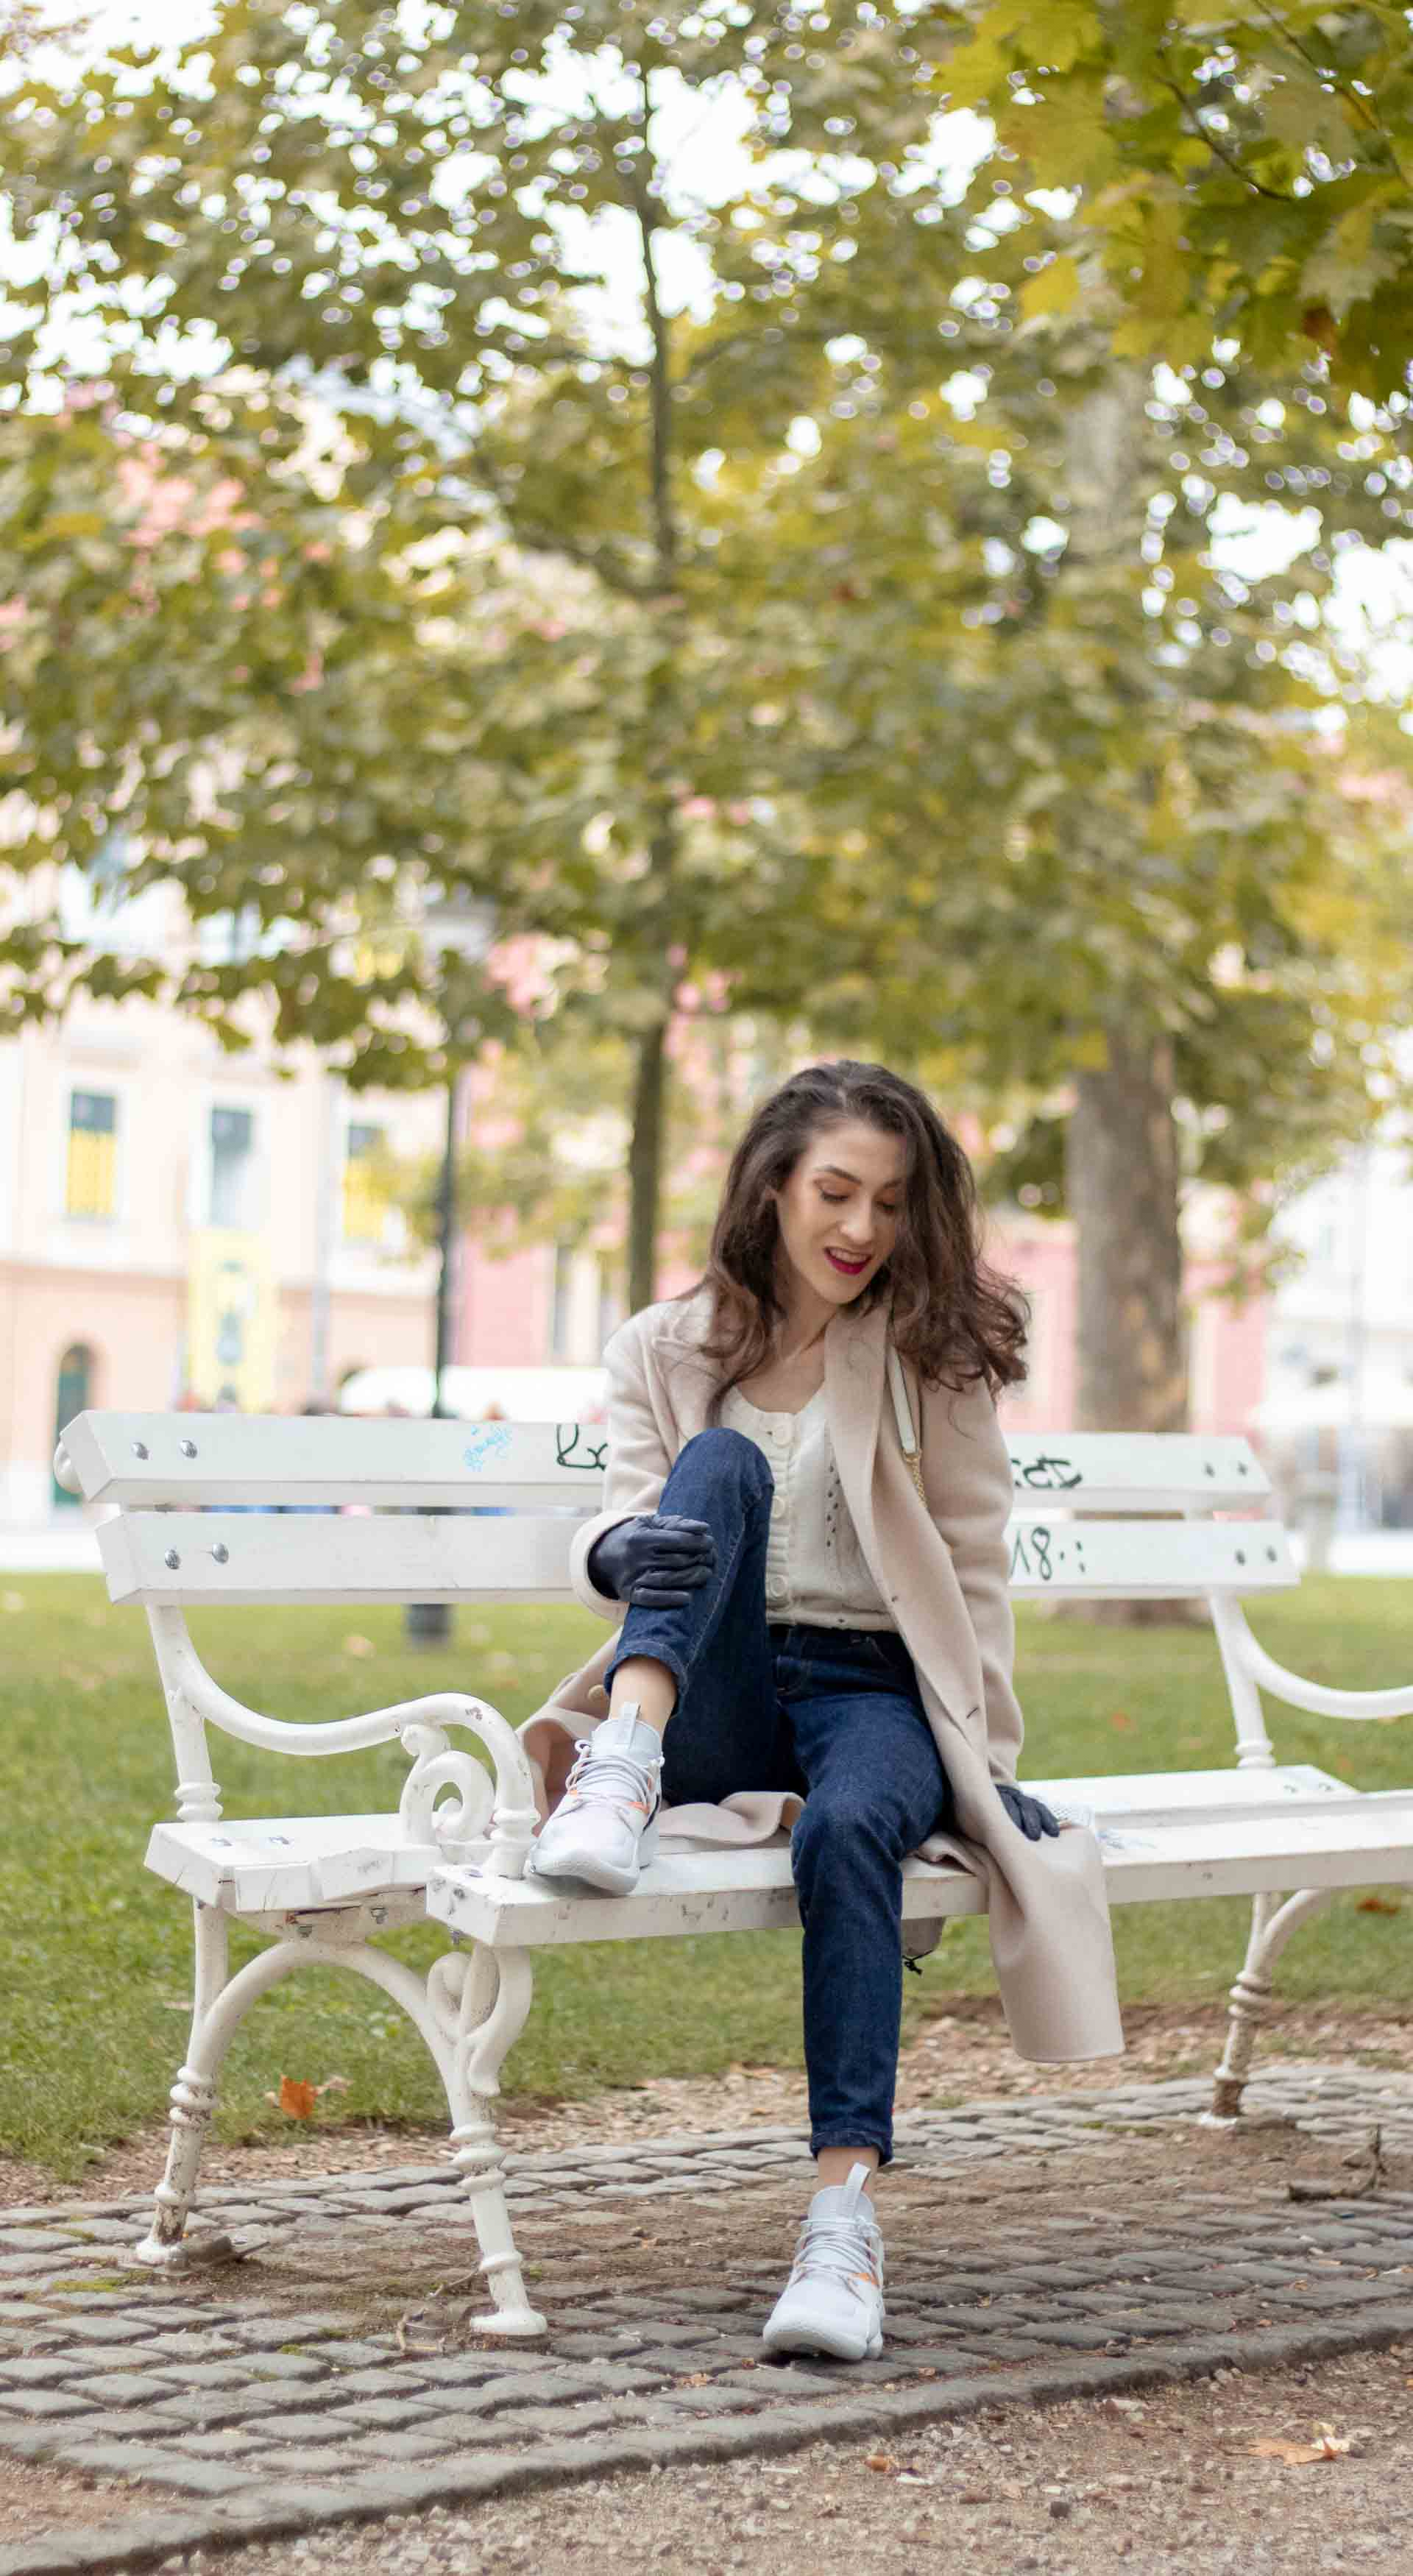 Beautiful Slovenian Fashion Blogger Veronika Lipar of Brunette from Wall dressed in white Mango cardigan tucked into A.P.C. dark blue denim jeans, Weekend Max Mara coat, Reebok instapump having fun in park